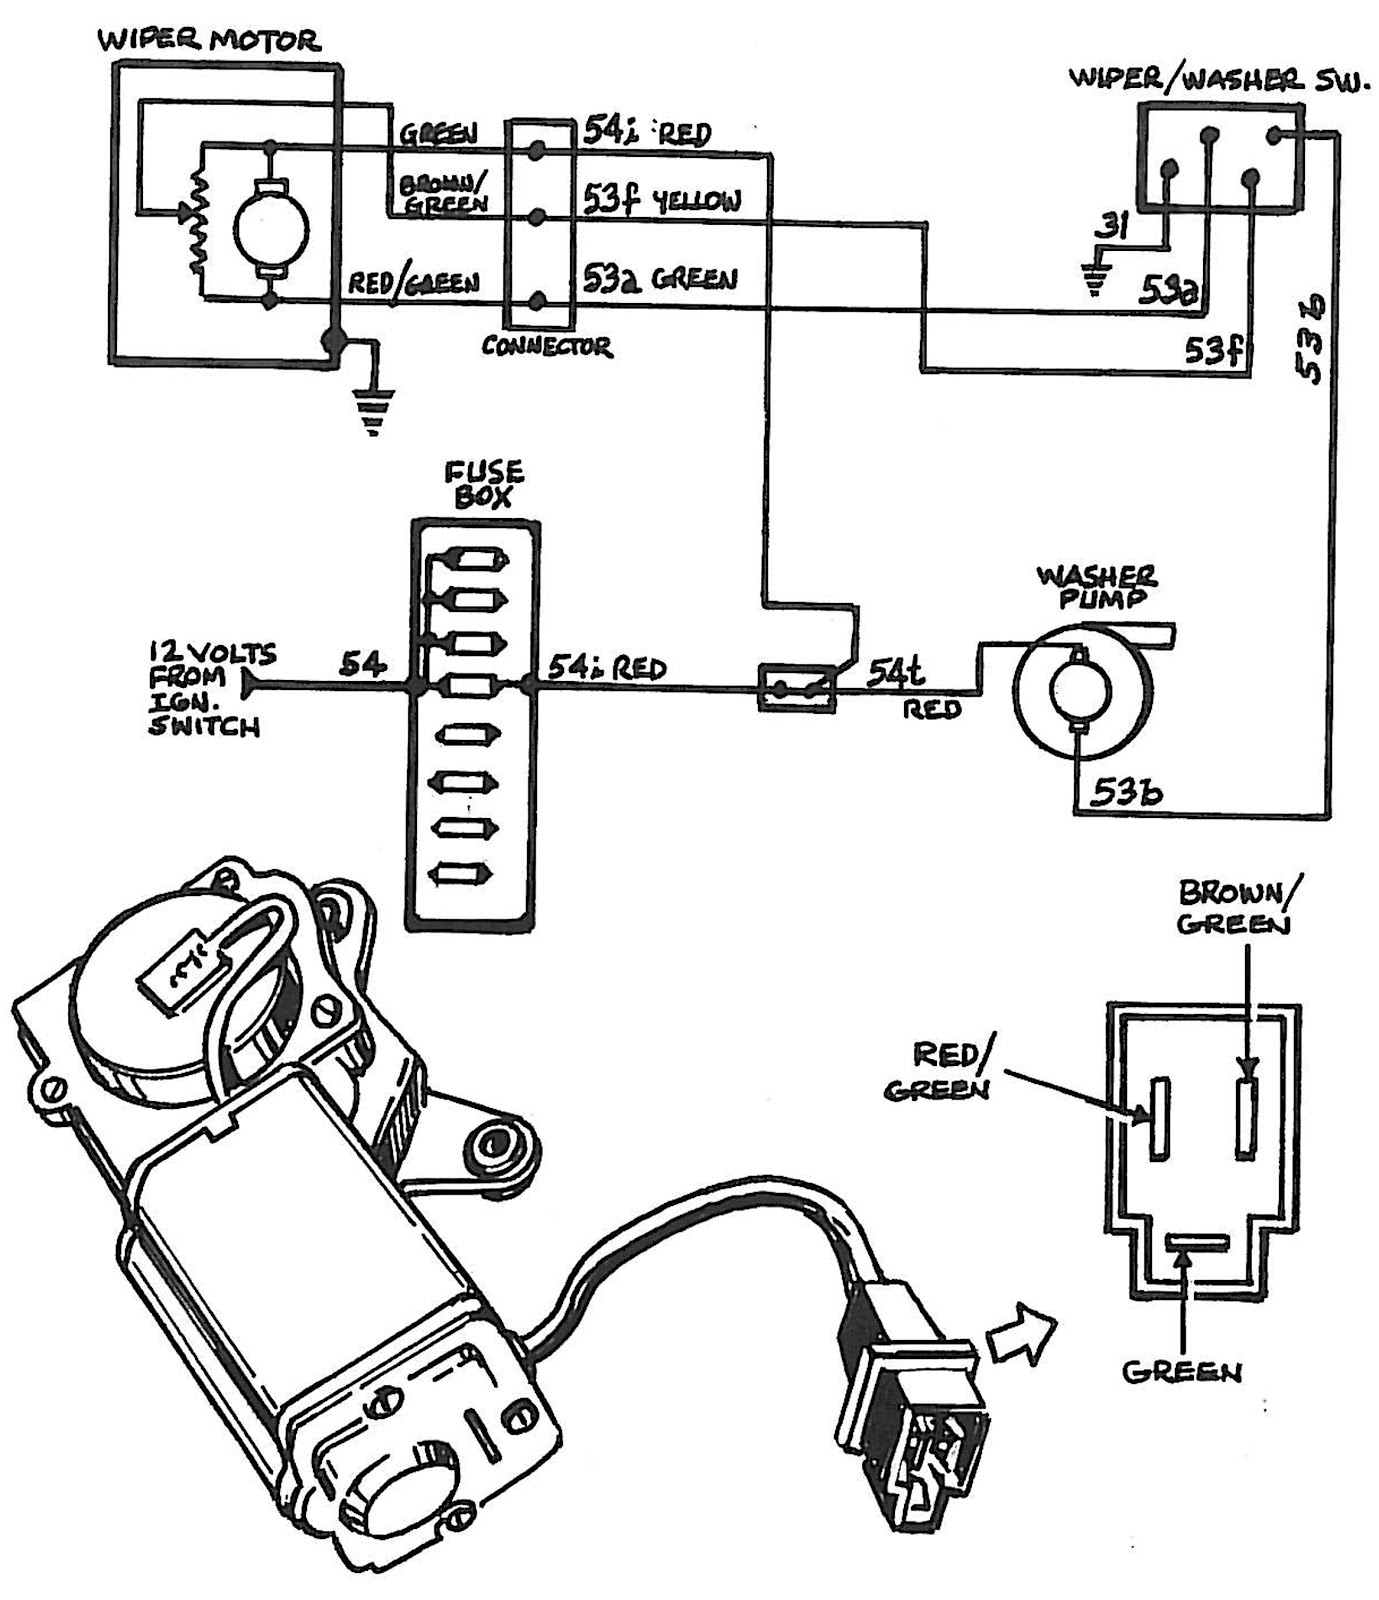 Wiper Motor Wiring Diagram Diagrams 1983 Ford F 150 Switch Chevrolet Get Free Image About Gmc Van 91 F150